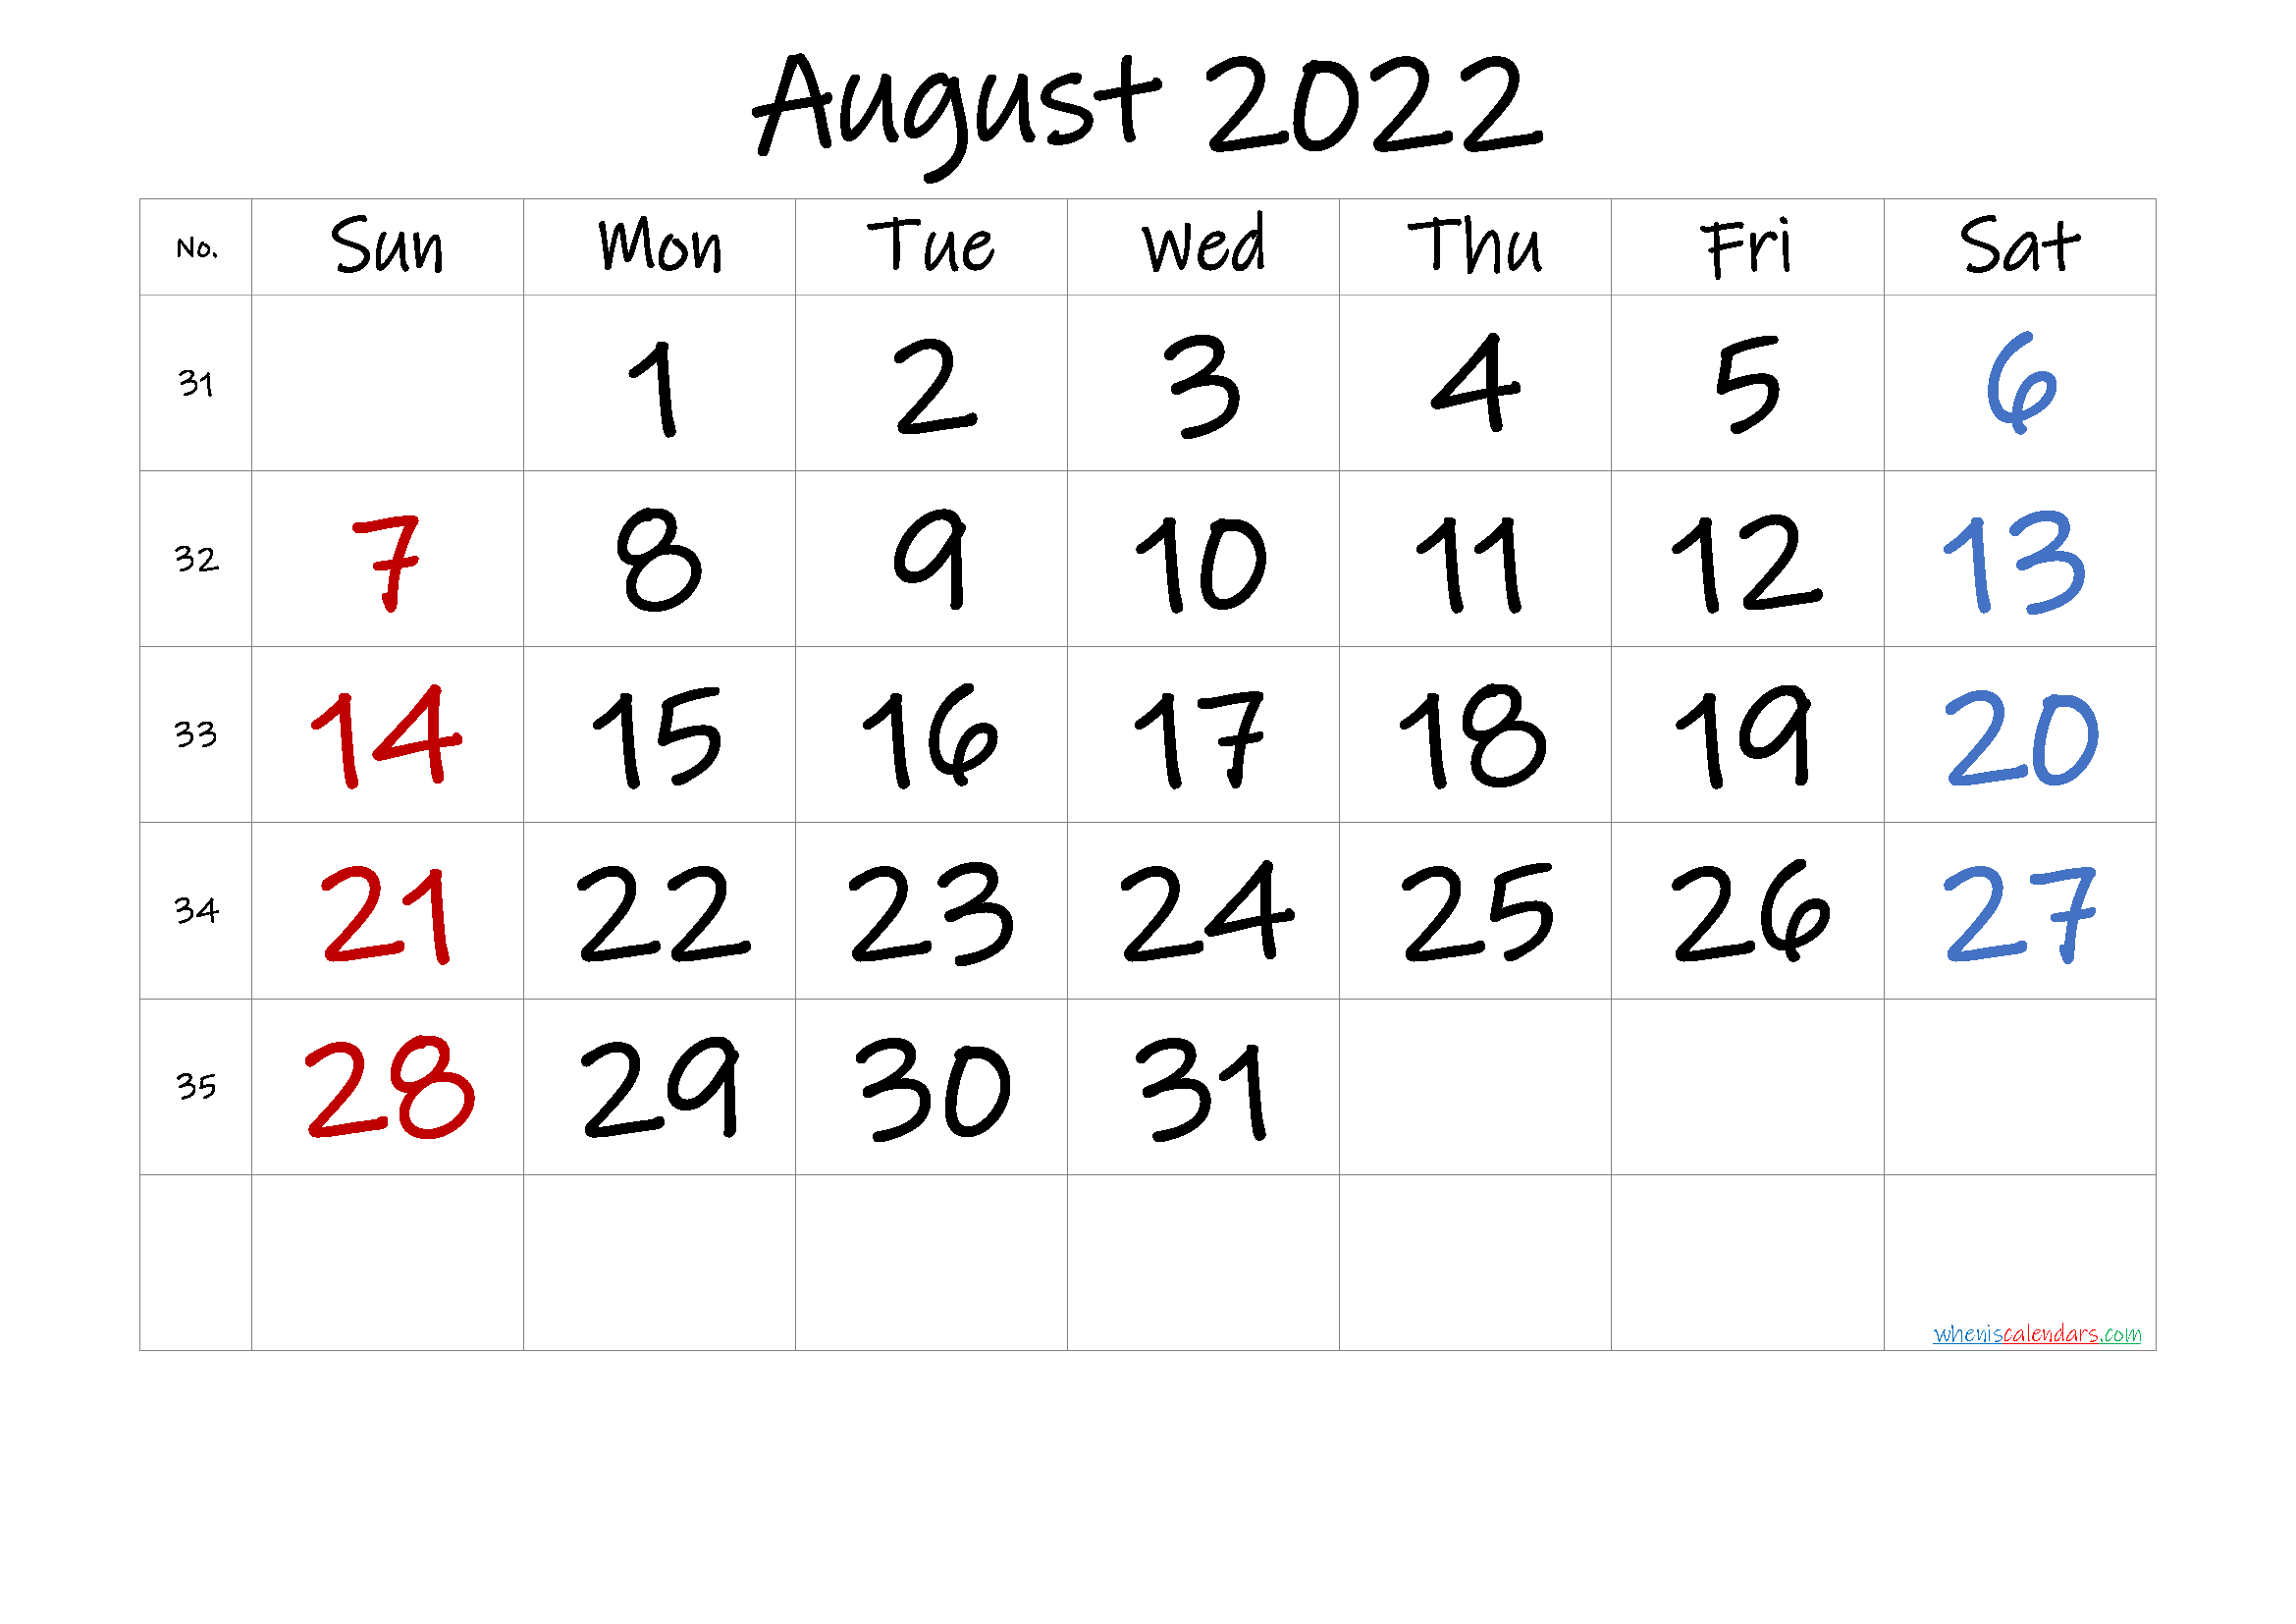 AUGUST 2022 Printable Calendar with Holidays